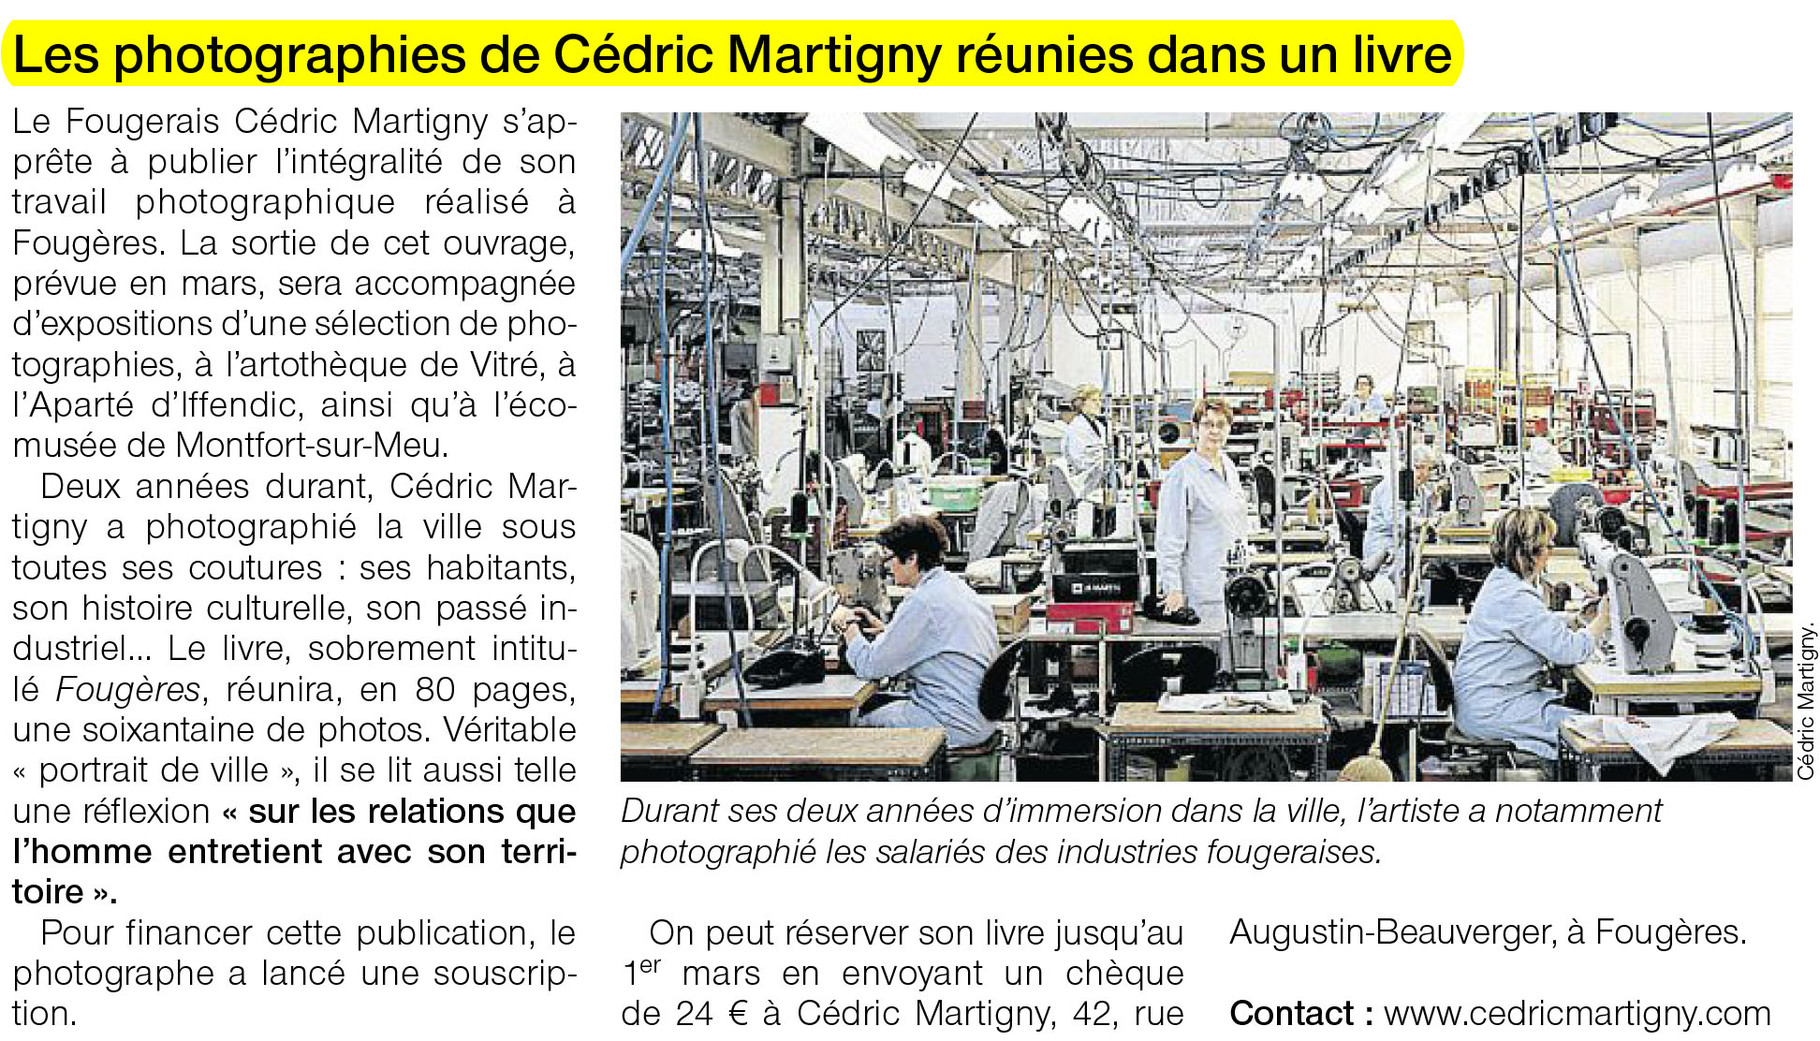 Ouest-France - 9 mars 2013